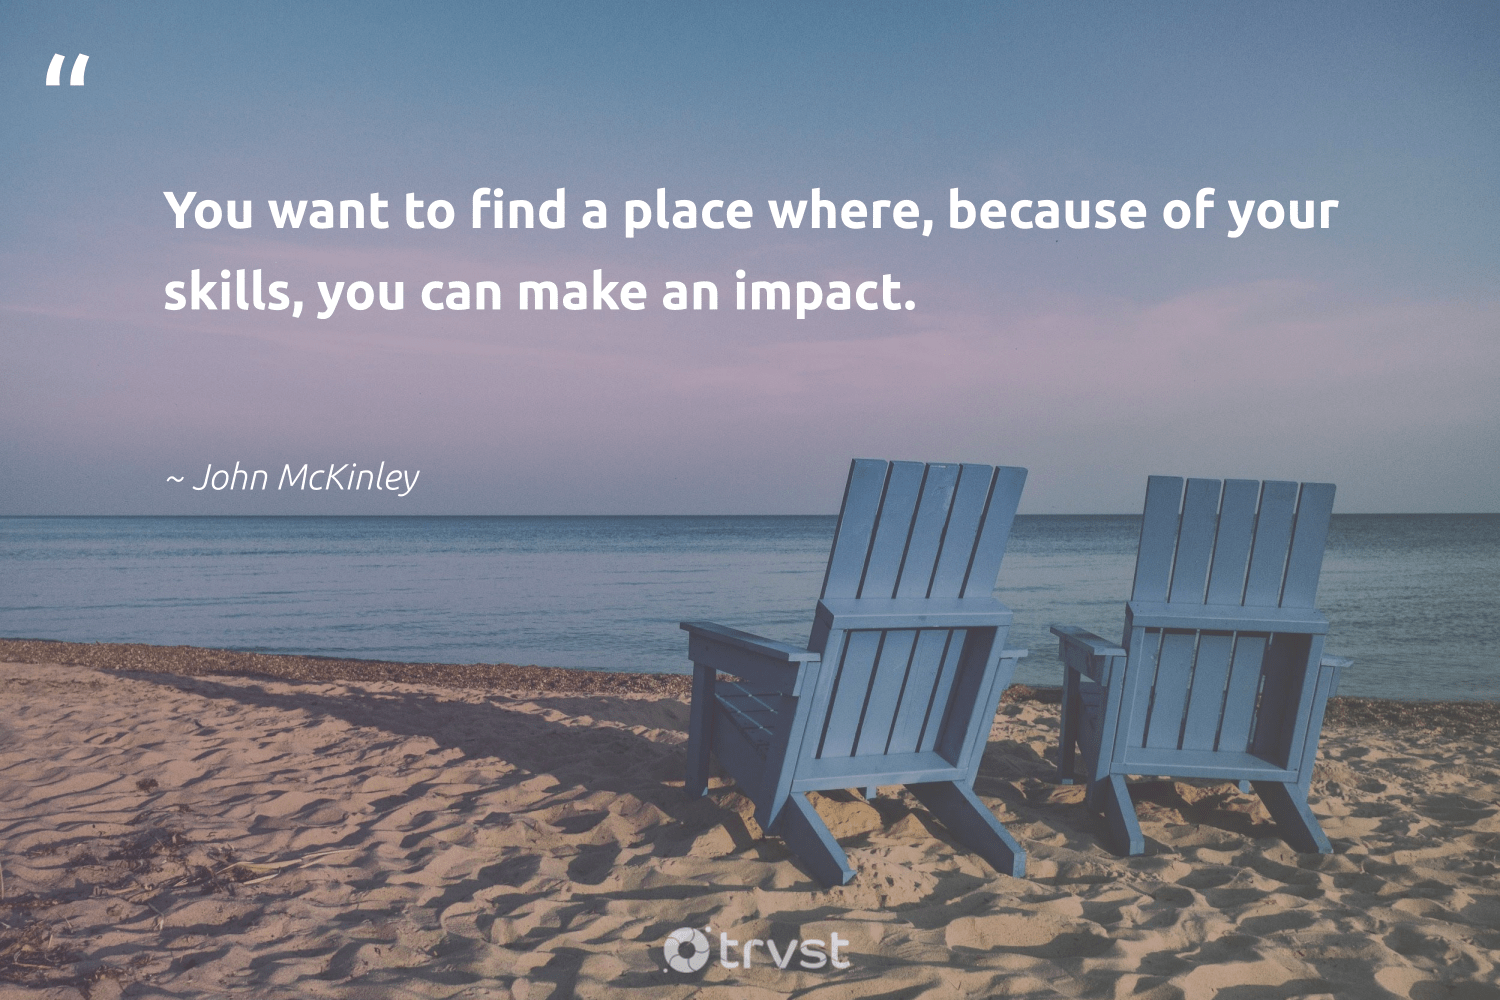 """""""You want to find a place where, because of your skills, you can make an impact.""""  - John McKinley #trvst #quotes #impact #socialchange #ecoconscious #ethicalbusiness #dogood #giveback #takeaction #betterplanet #changetheworld #makeadifference"""